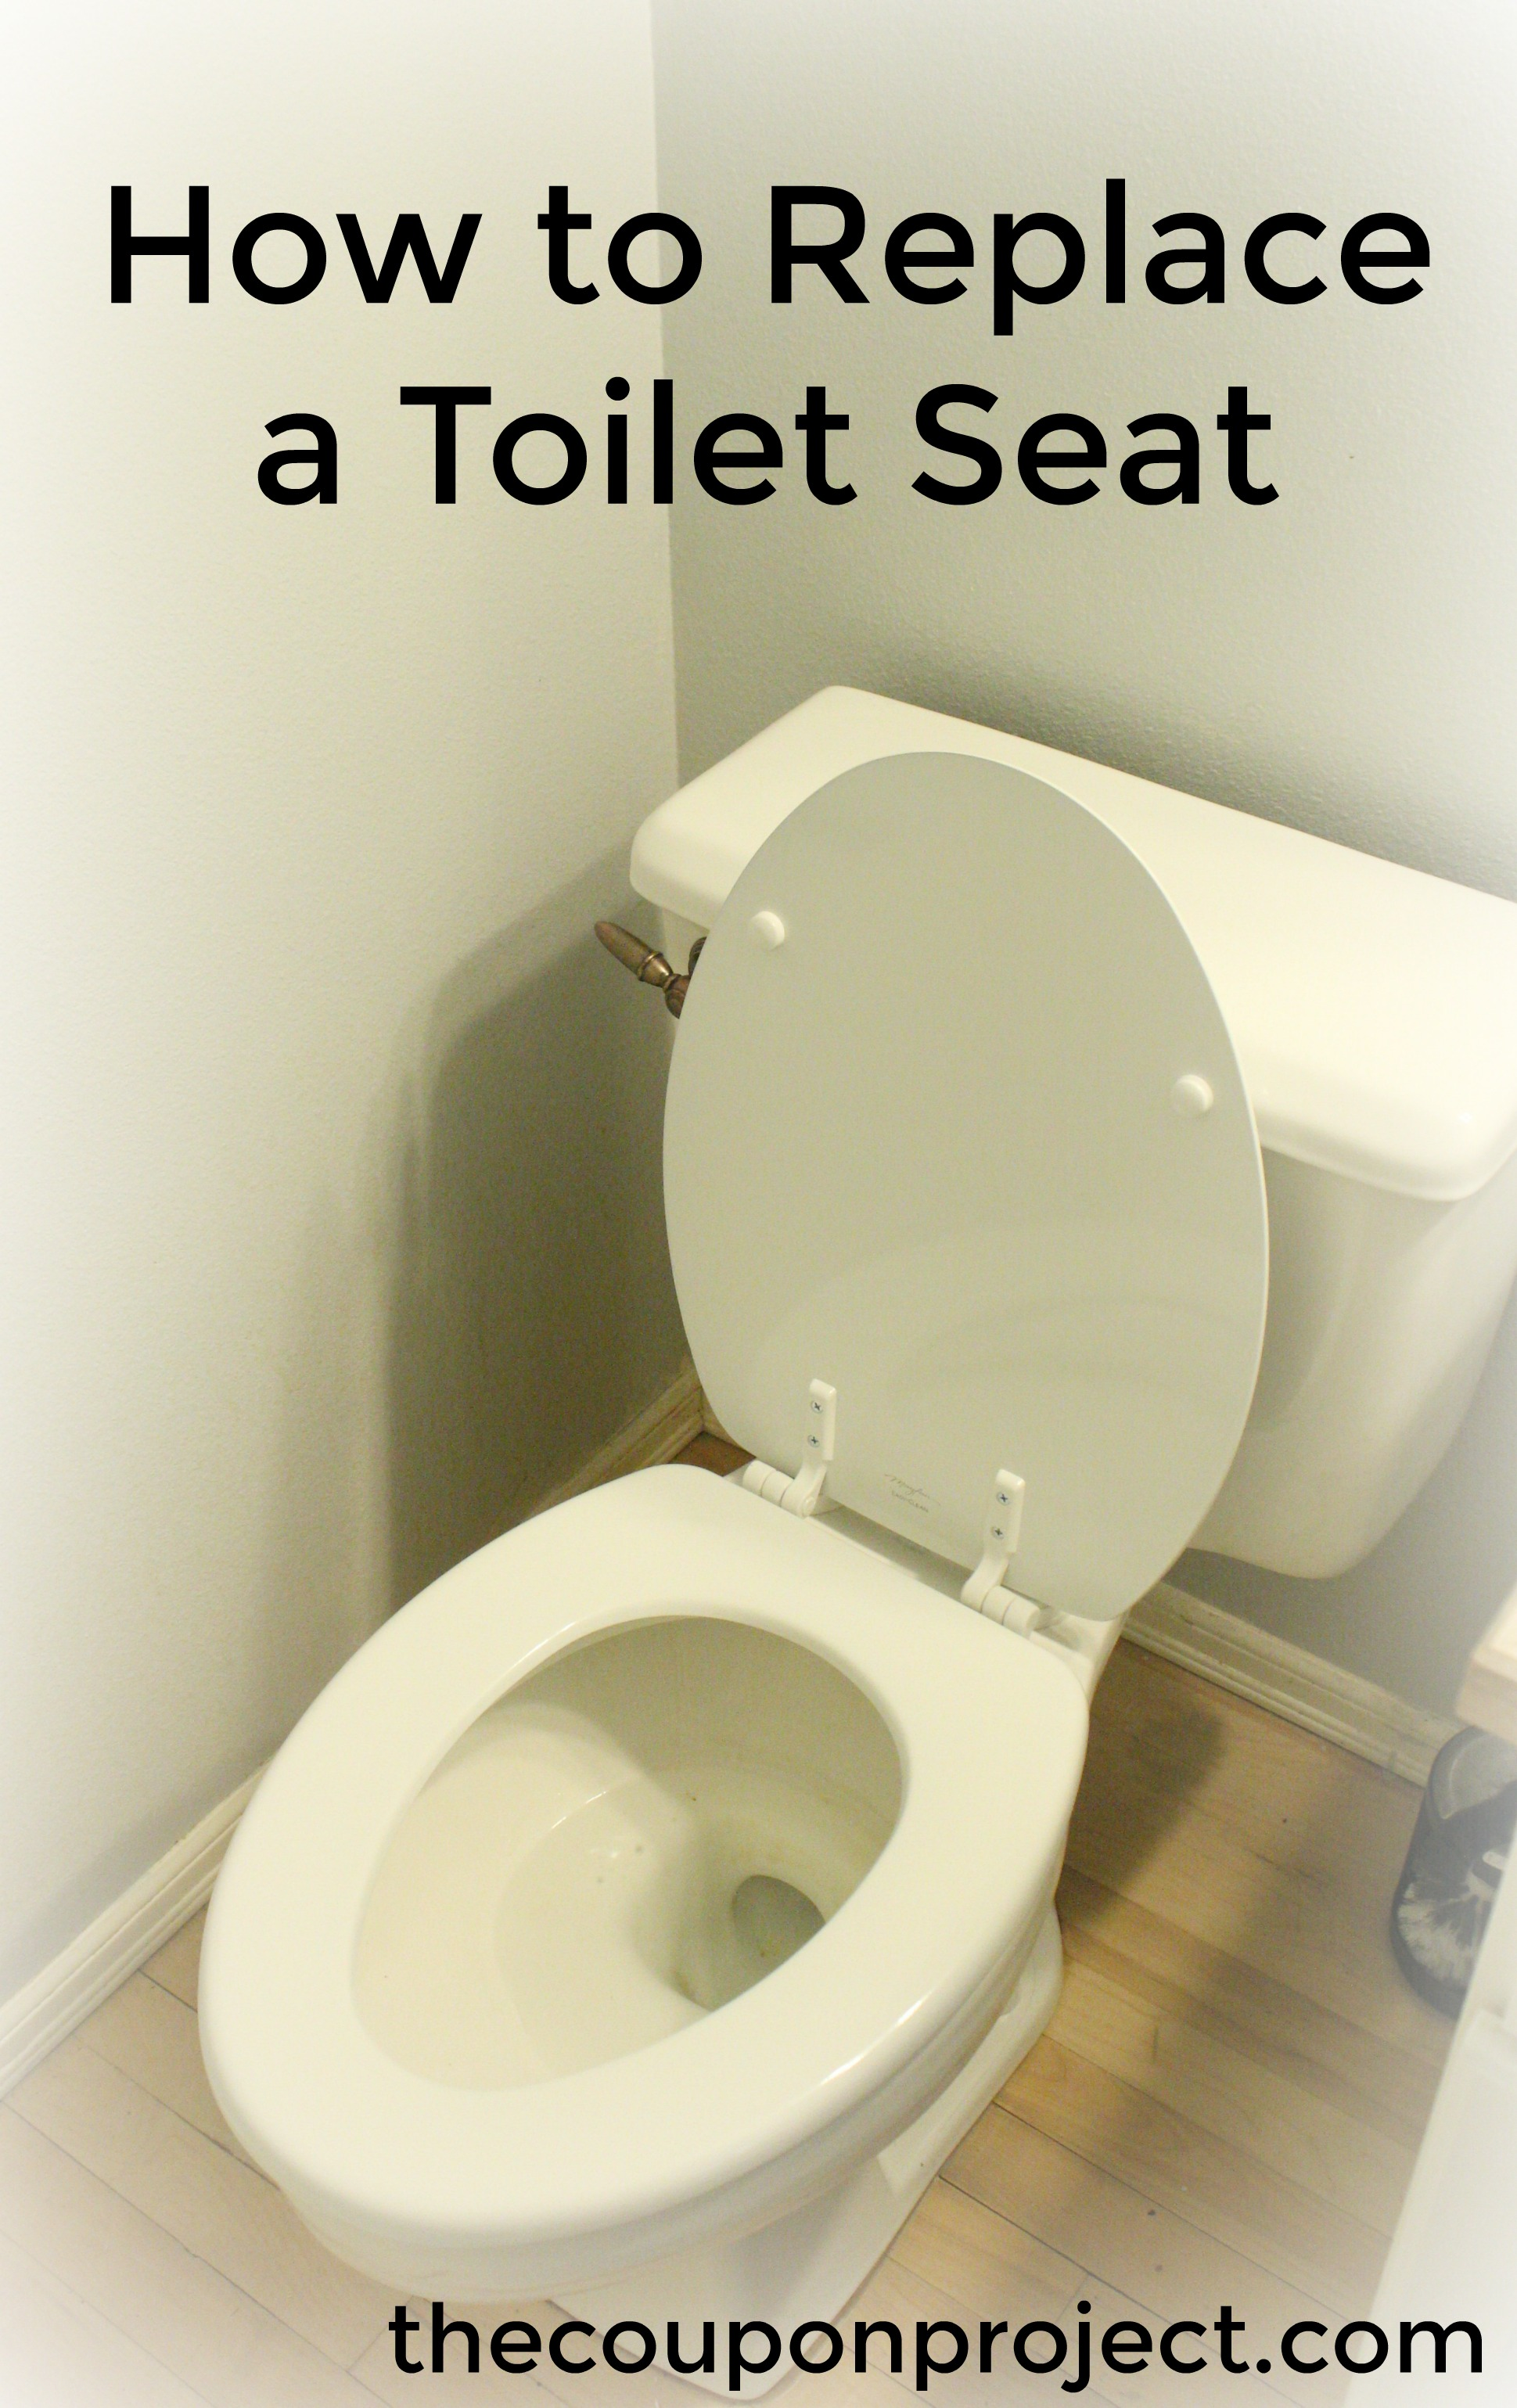 How To Replace A Toilet Seat The Coupon Project